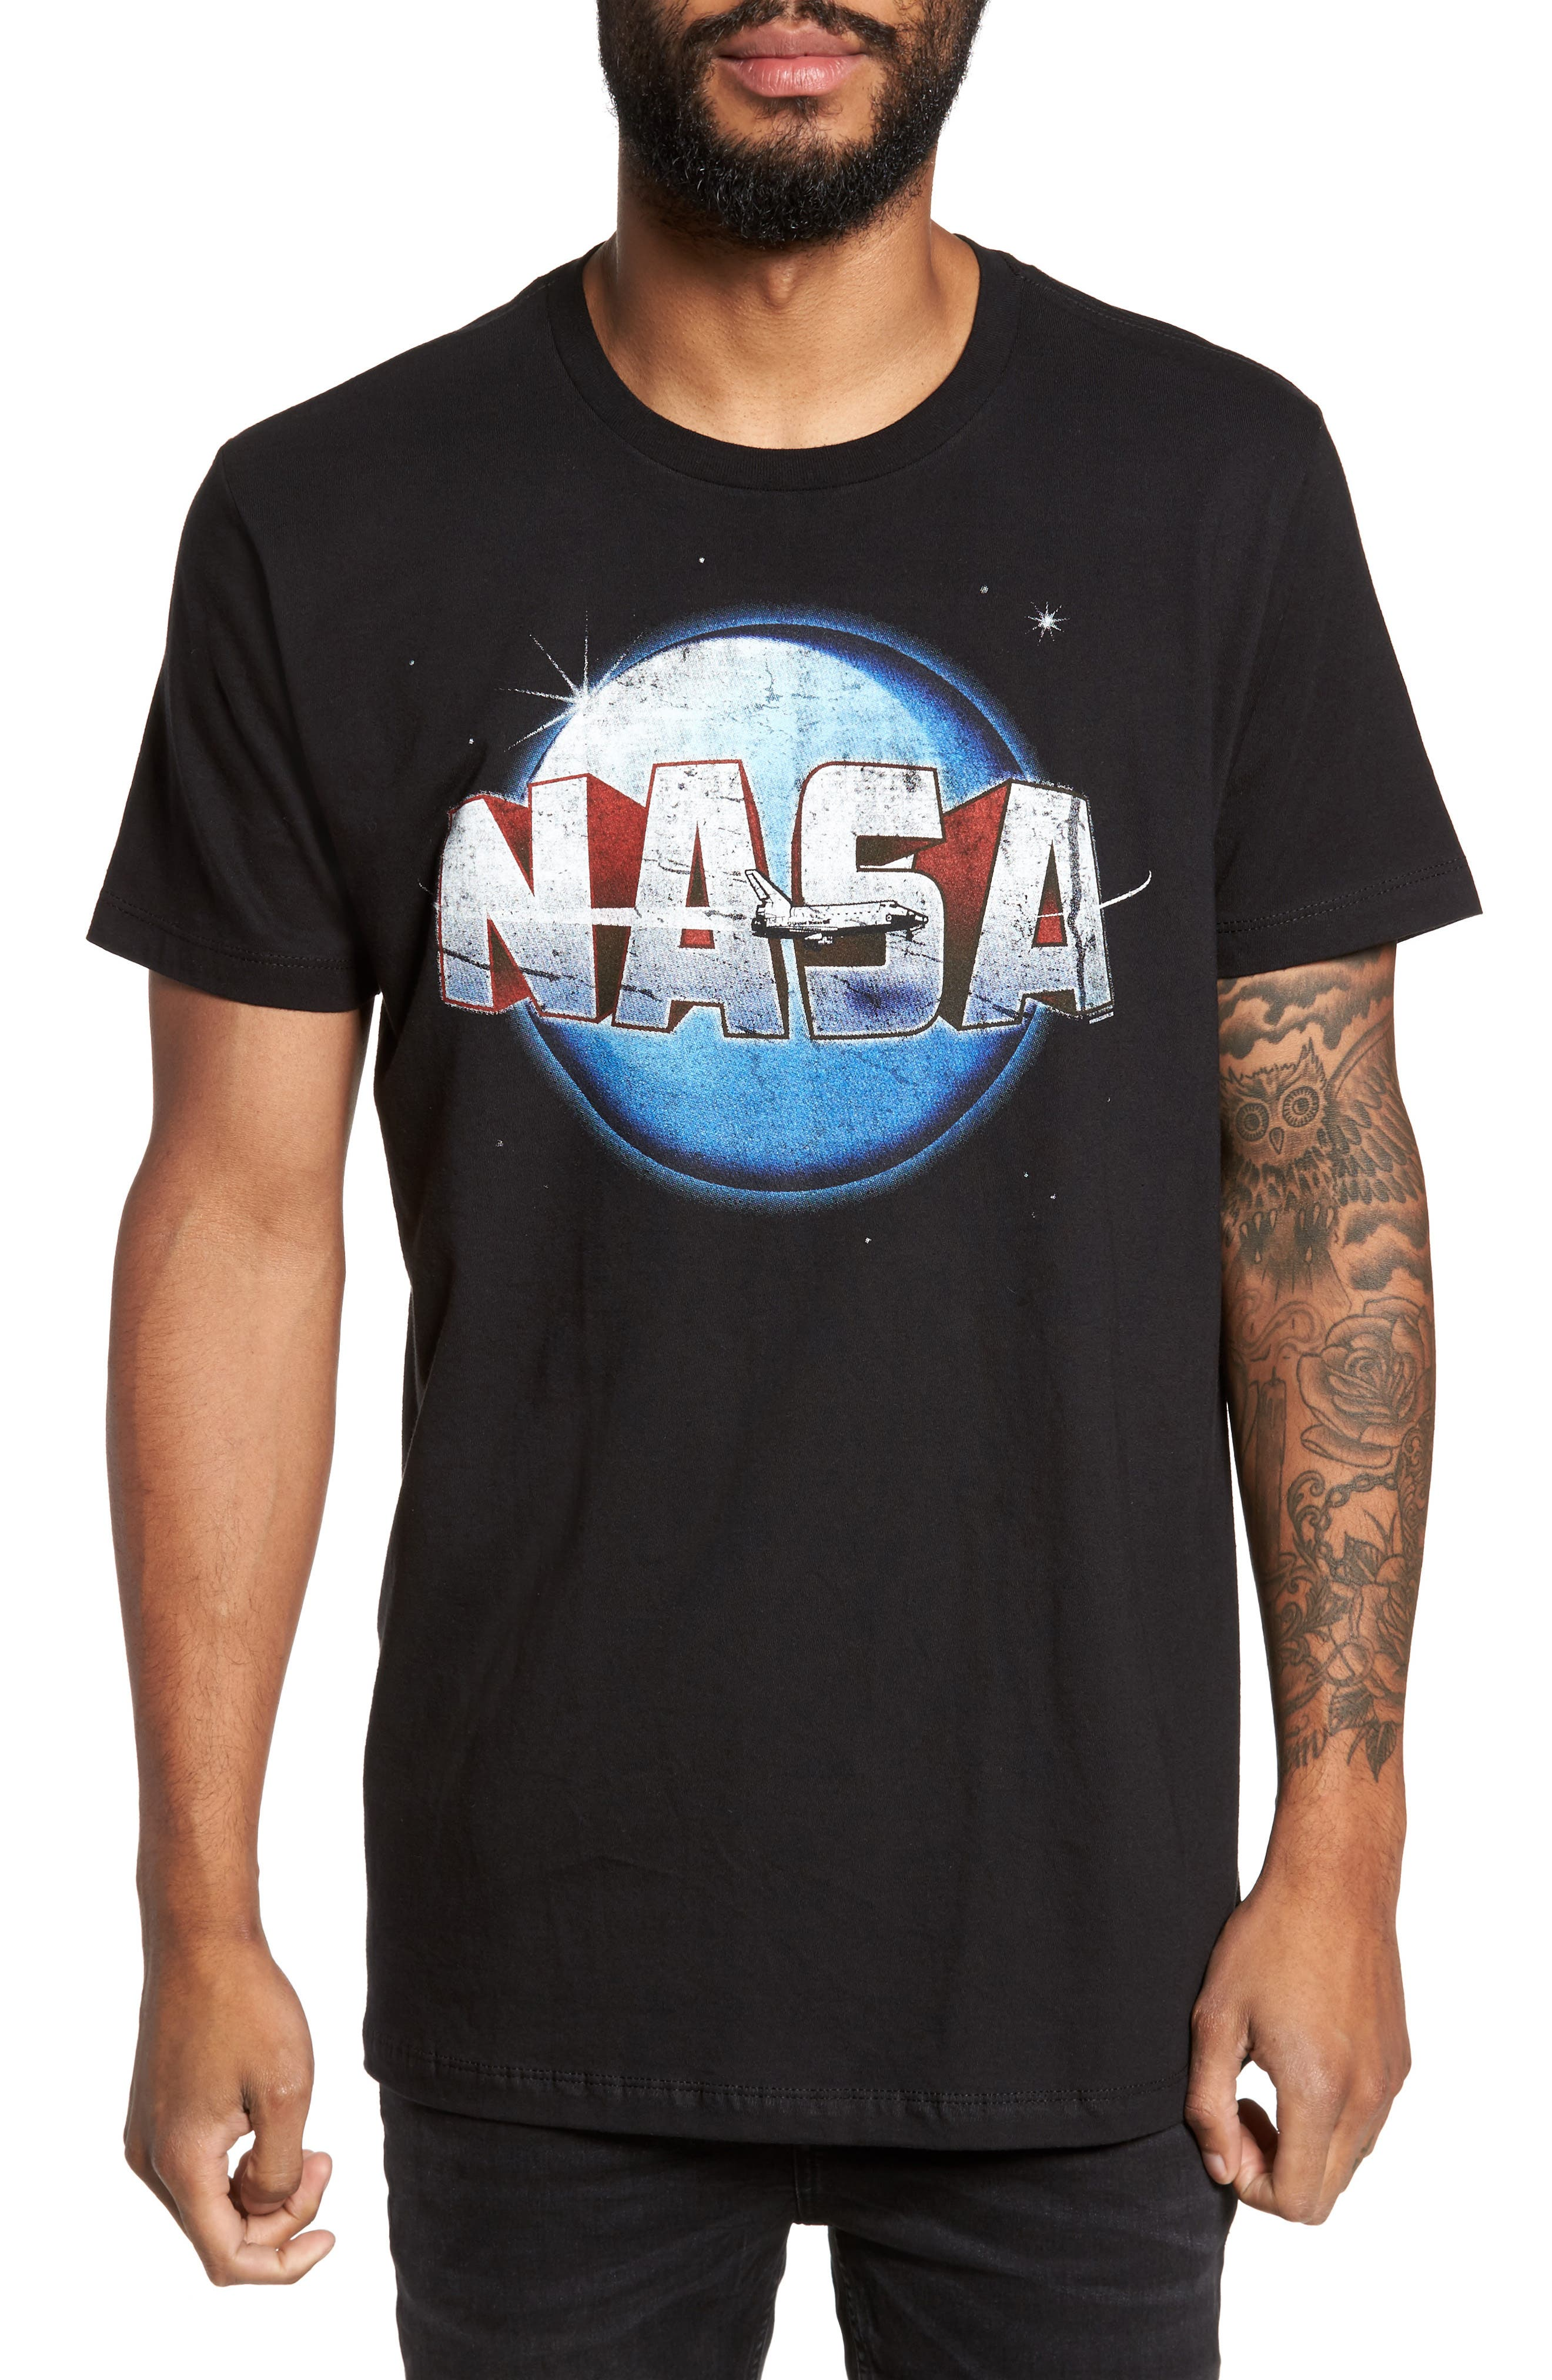 Alternate Image 1 Selected - The Rail NASA Moon Graphic T-Shirt